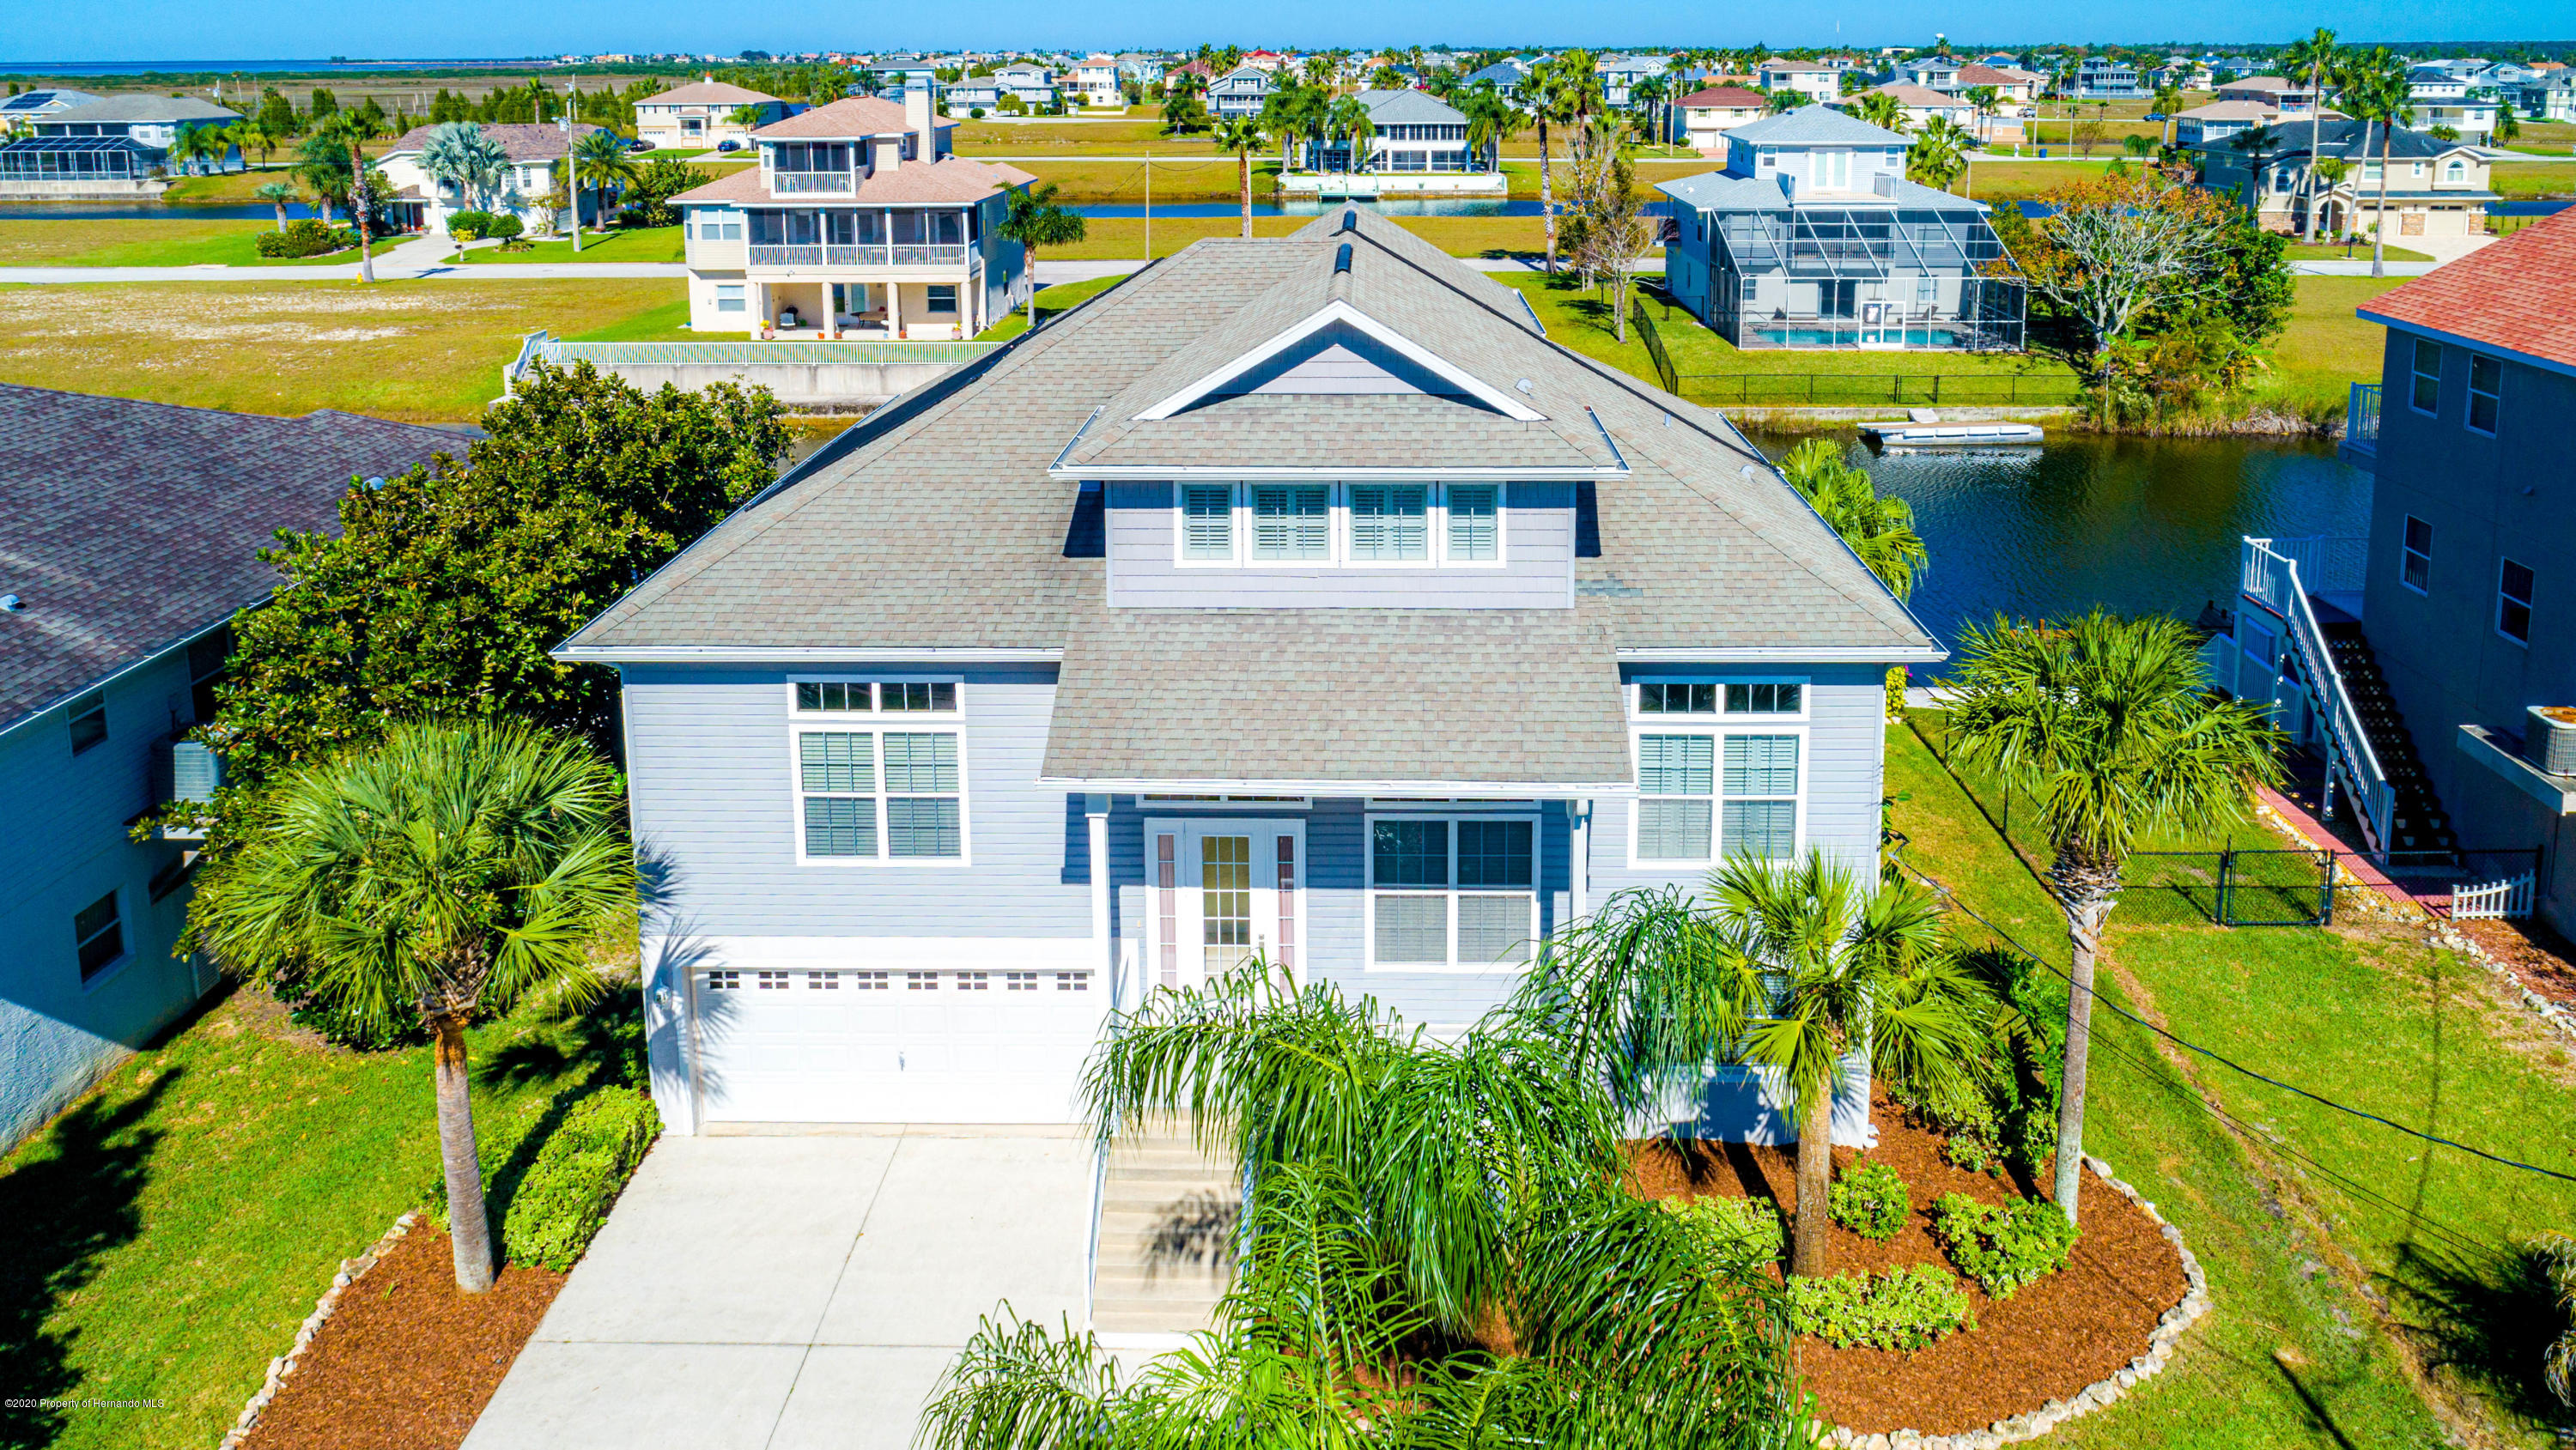 Image 1 For 3415 Palometa Drive